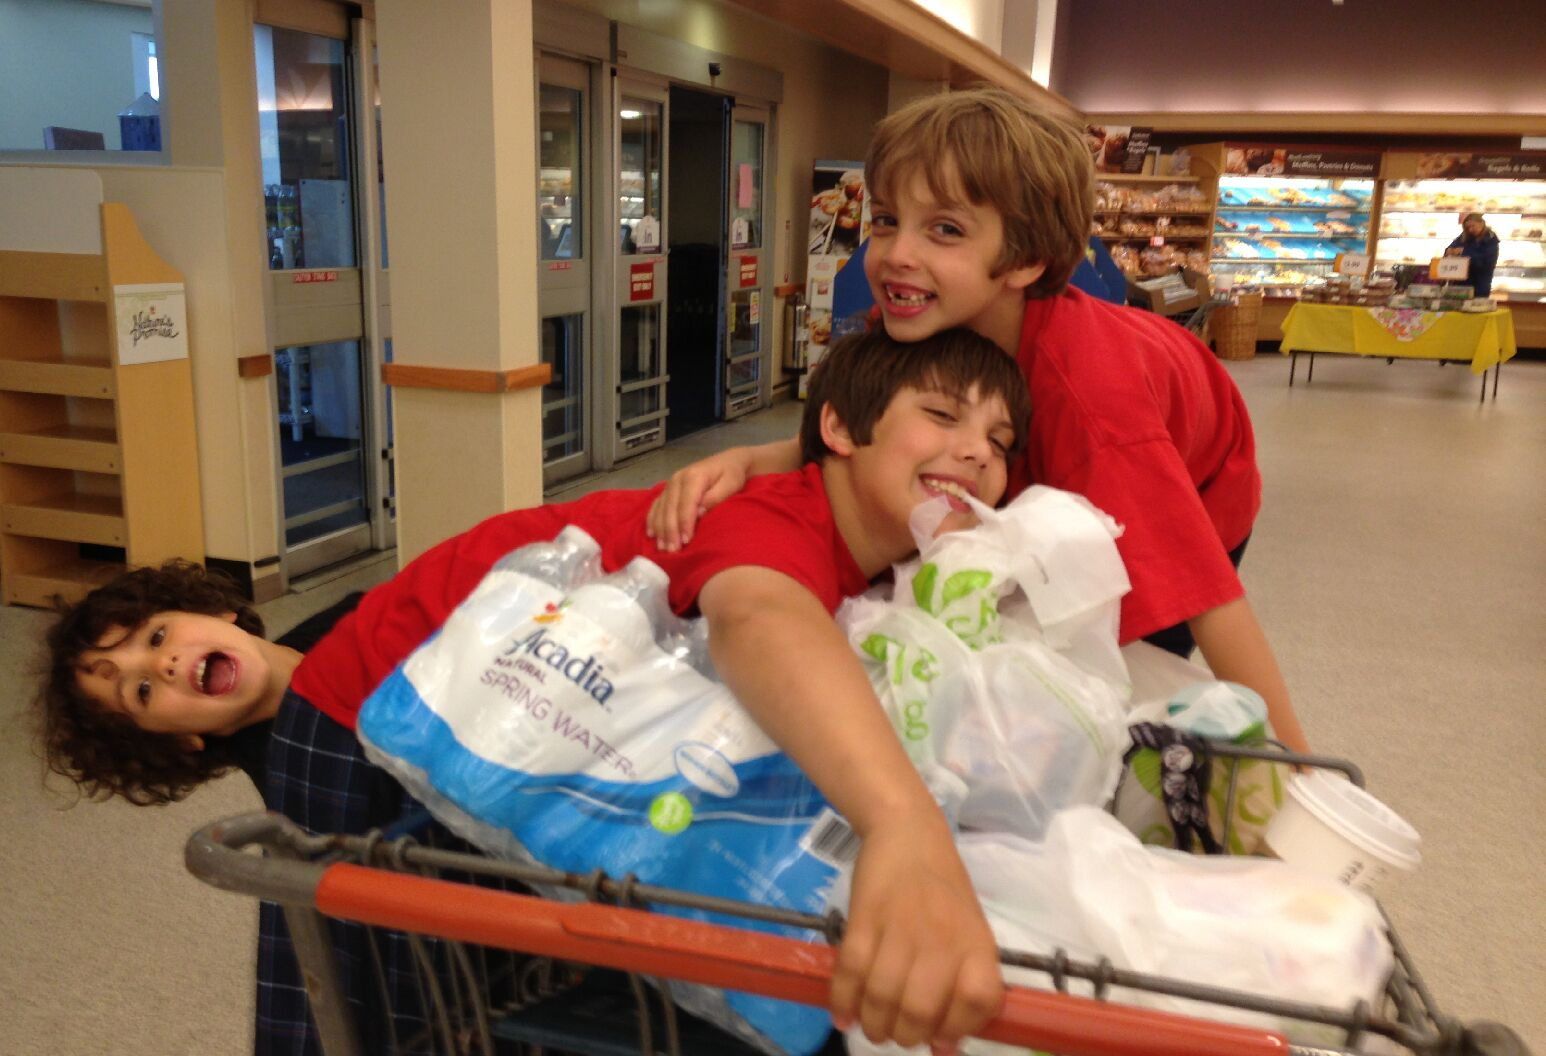 3 boys in a shopping cart